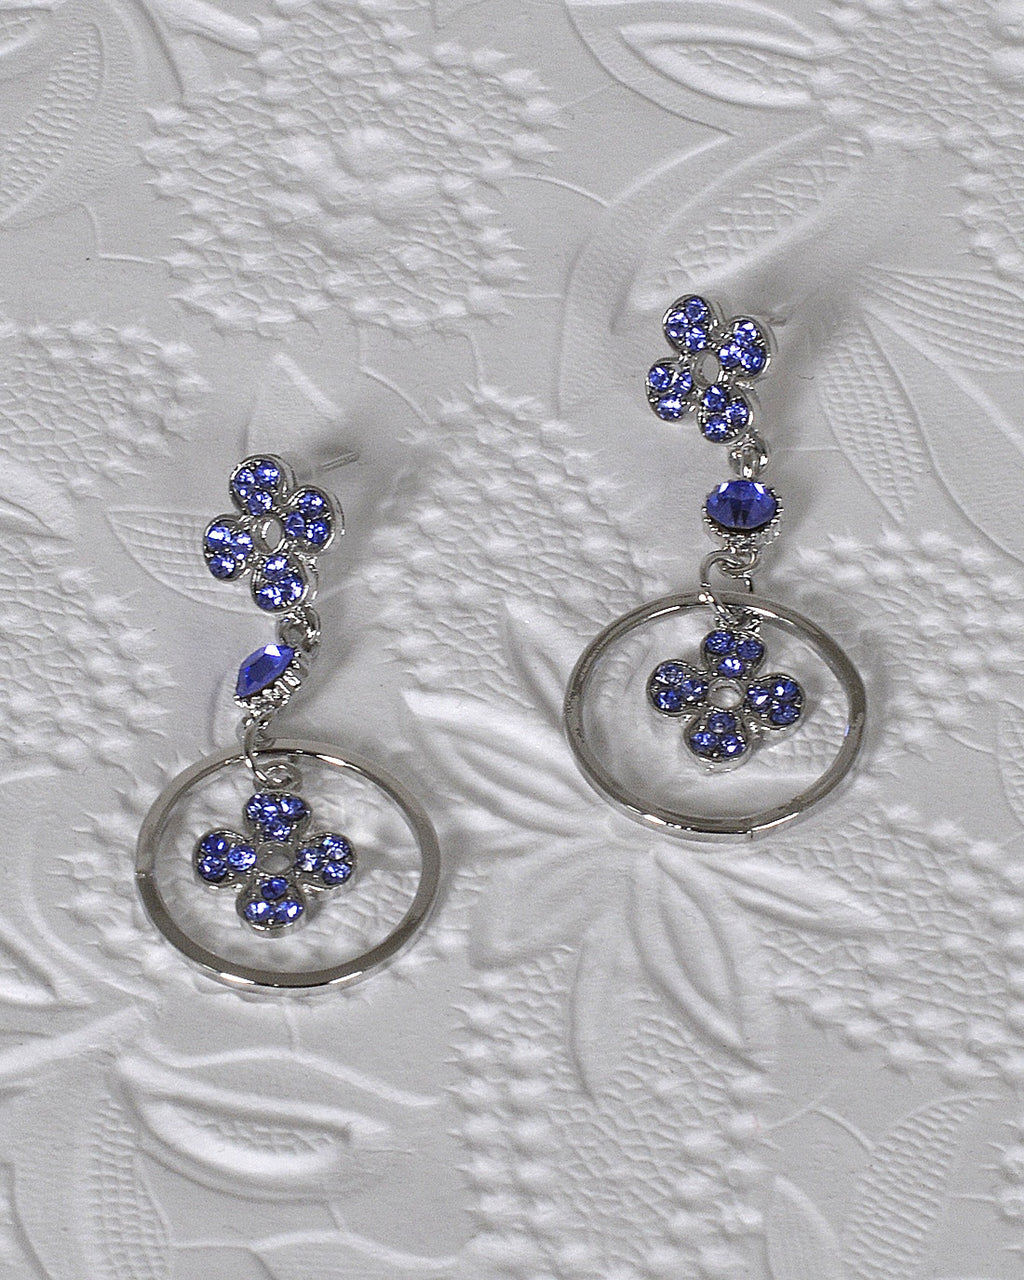 Rhinestone Studded Metallic Floral and Ring Detailing Drop Earrings